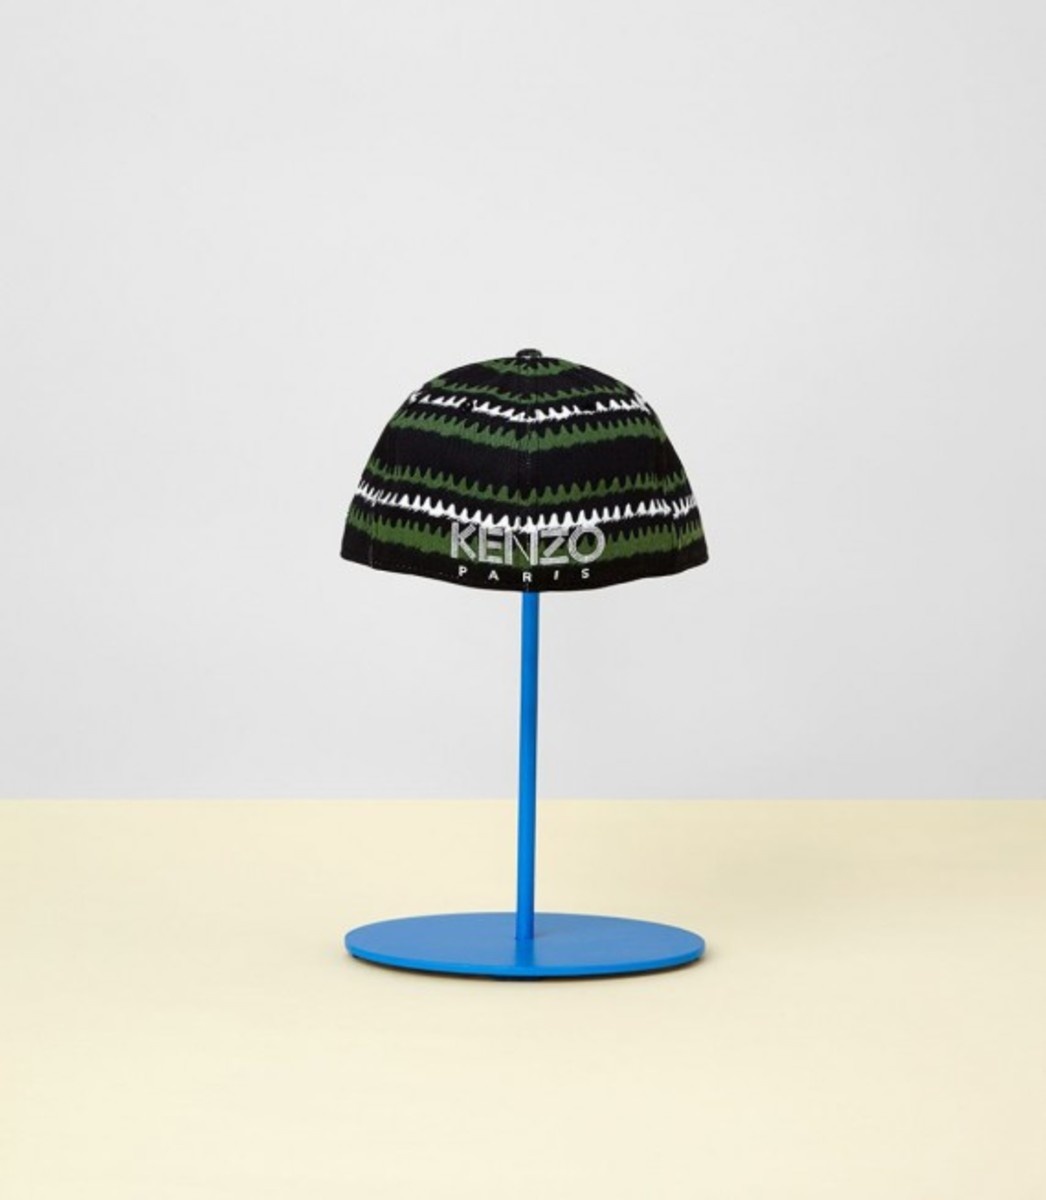 kenzo-new-era-spring-summer-2013-cap-collection-09